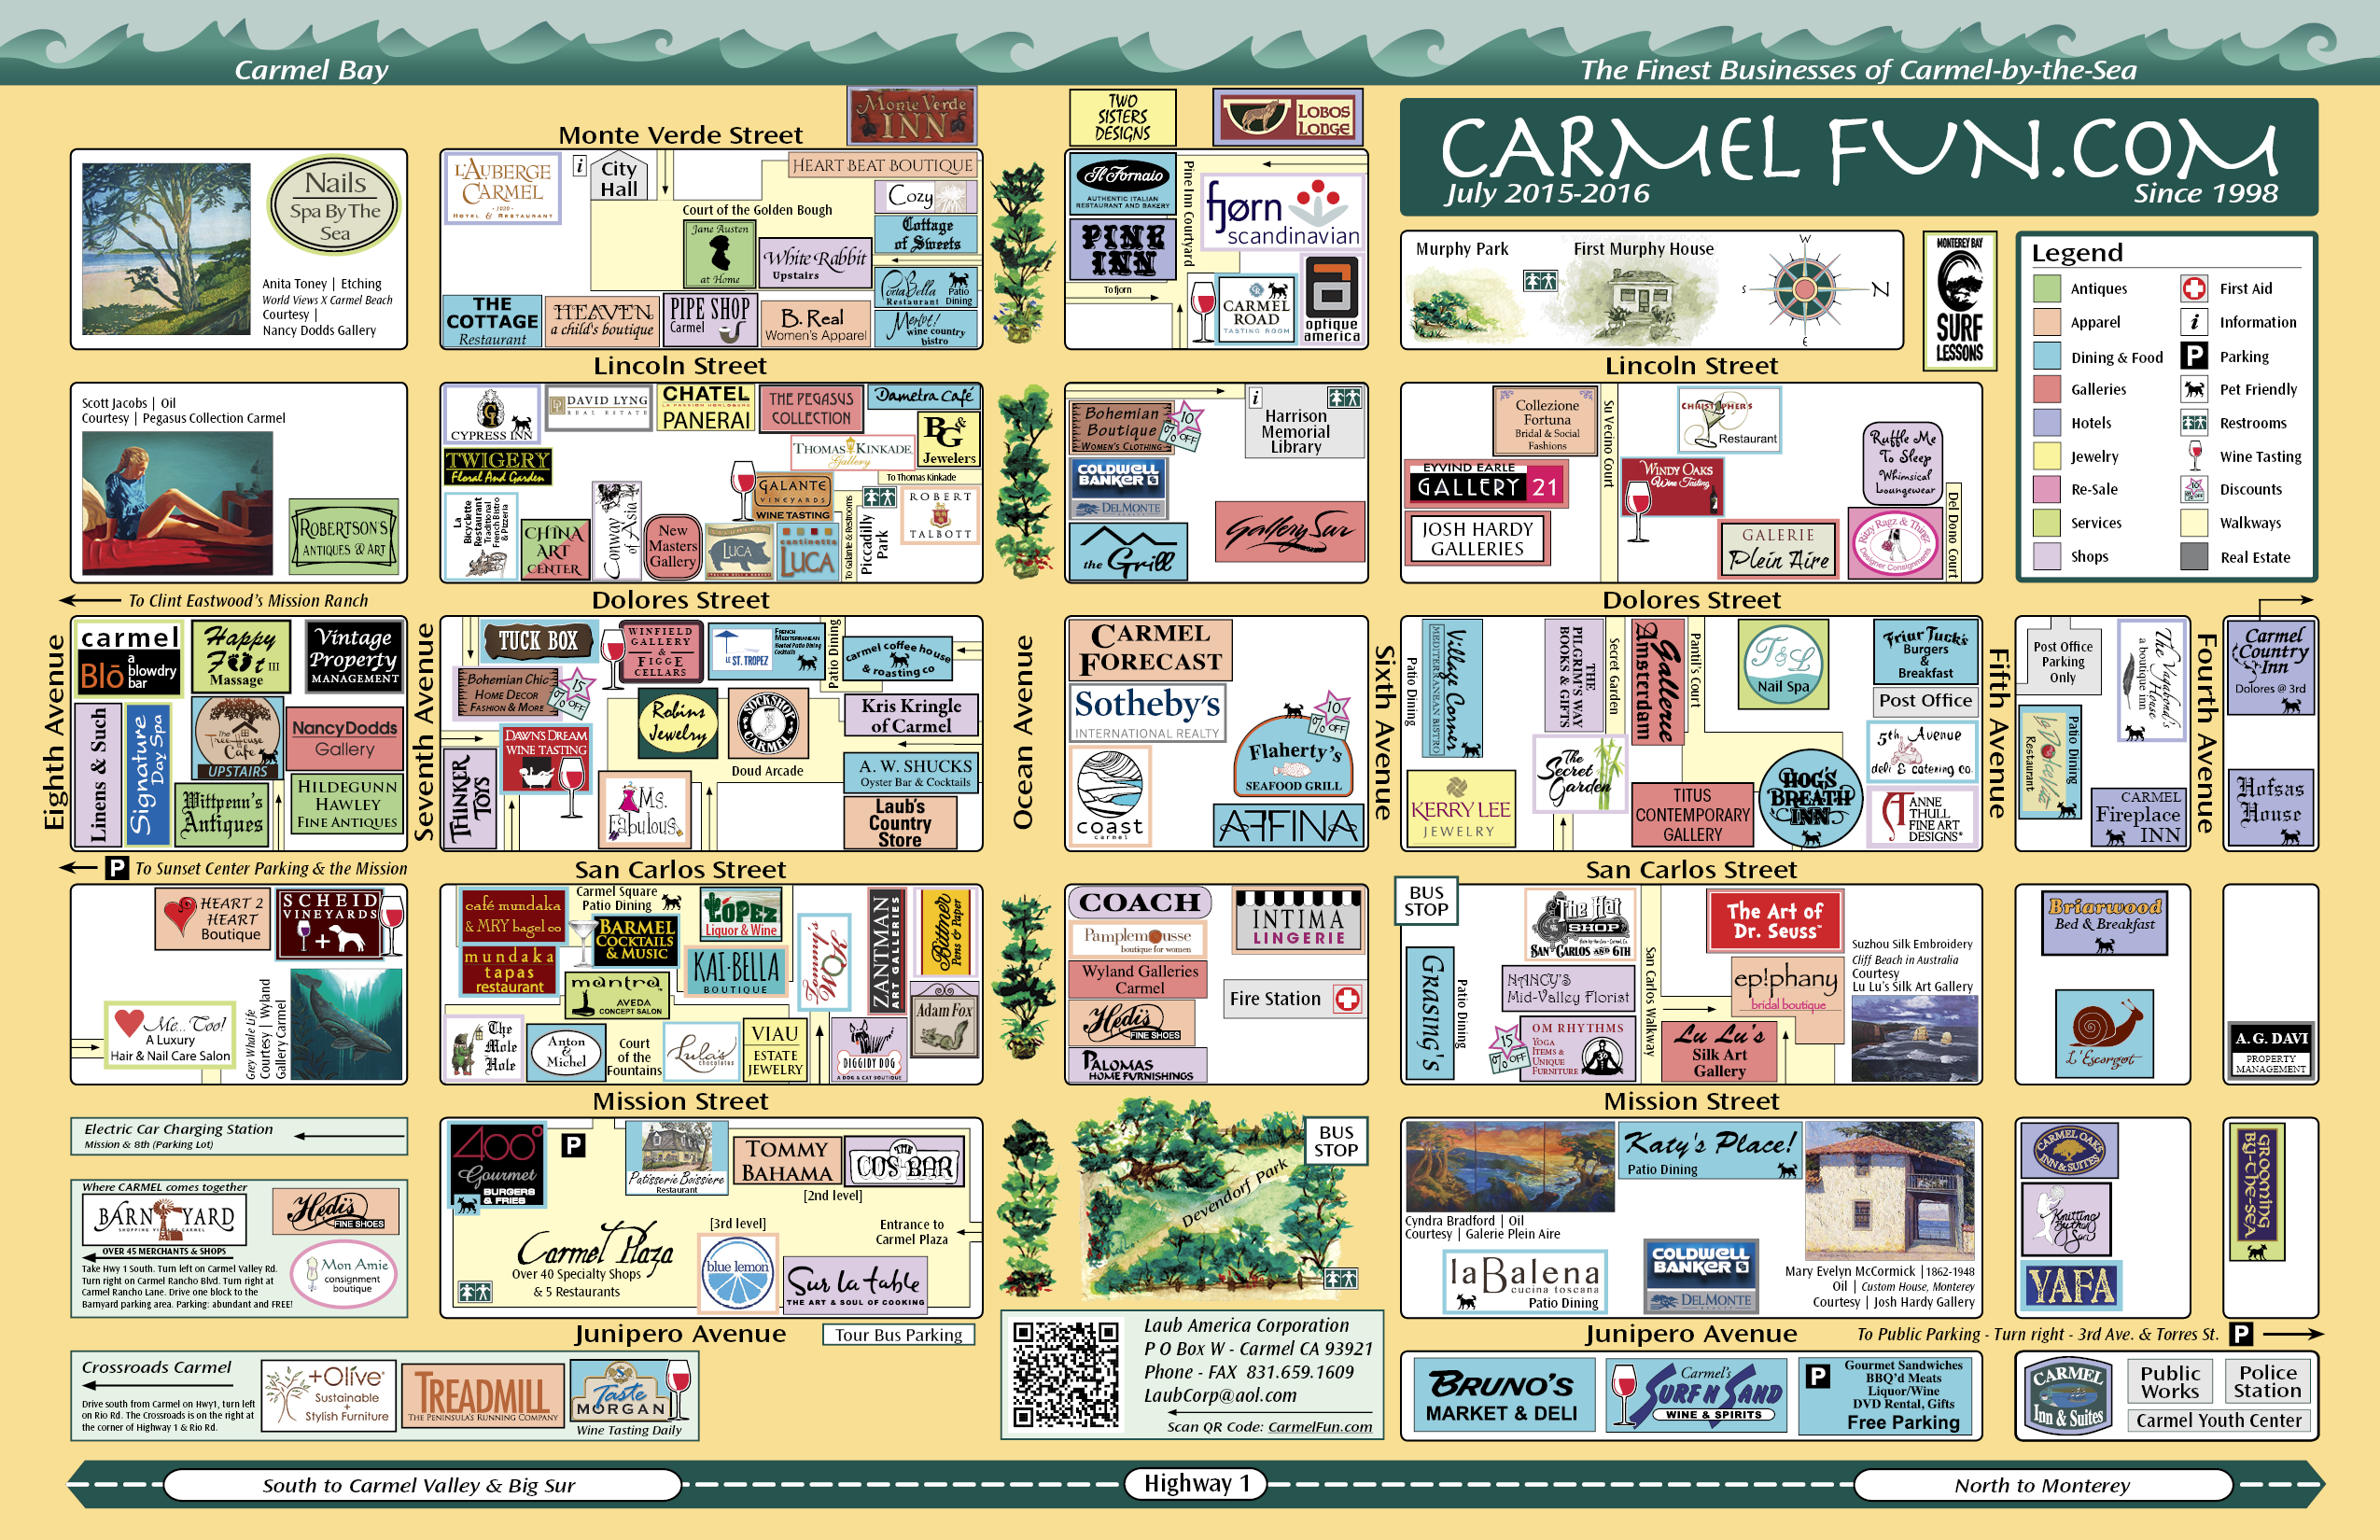 CarmelFun Map 2015 A source for places to shop dine stay play